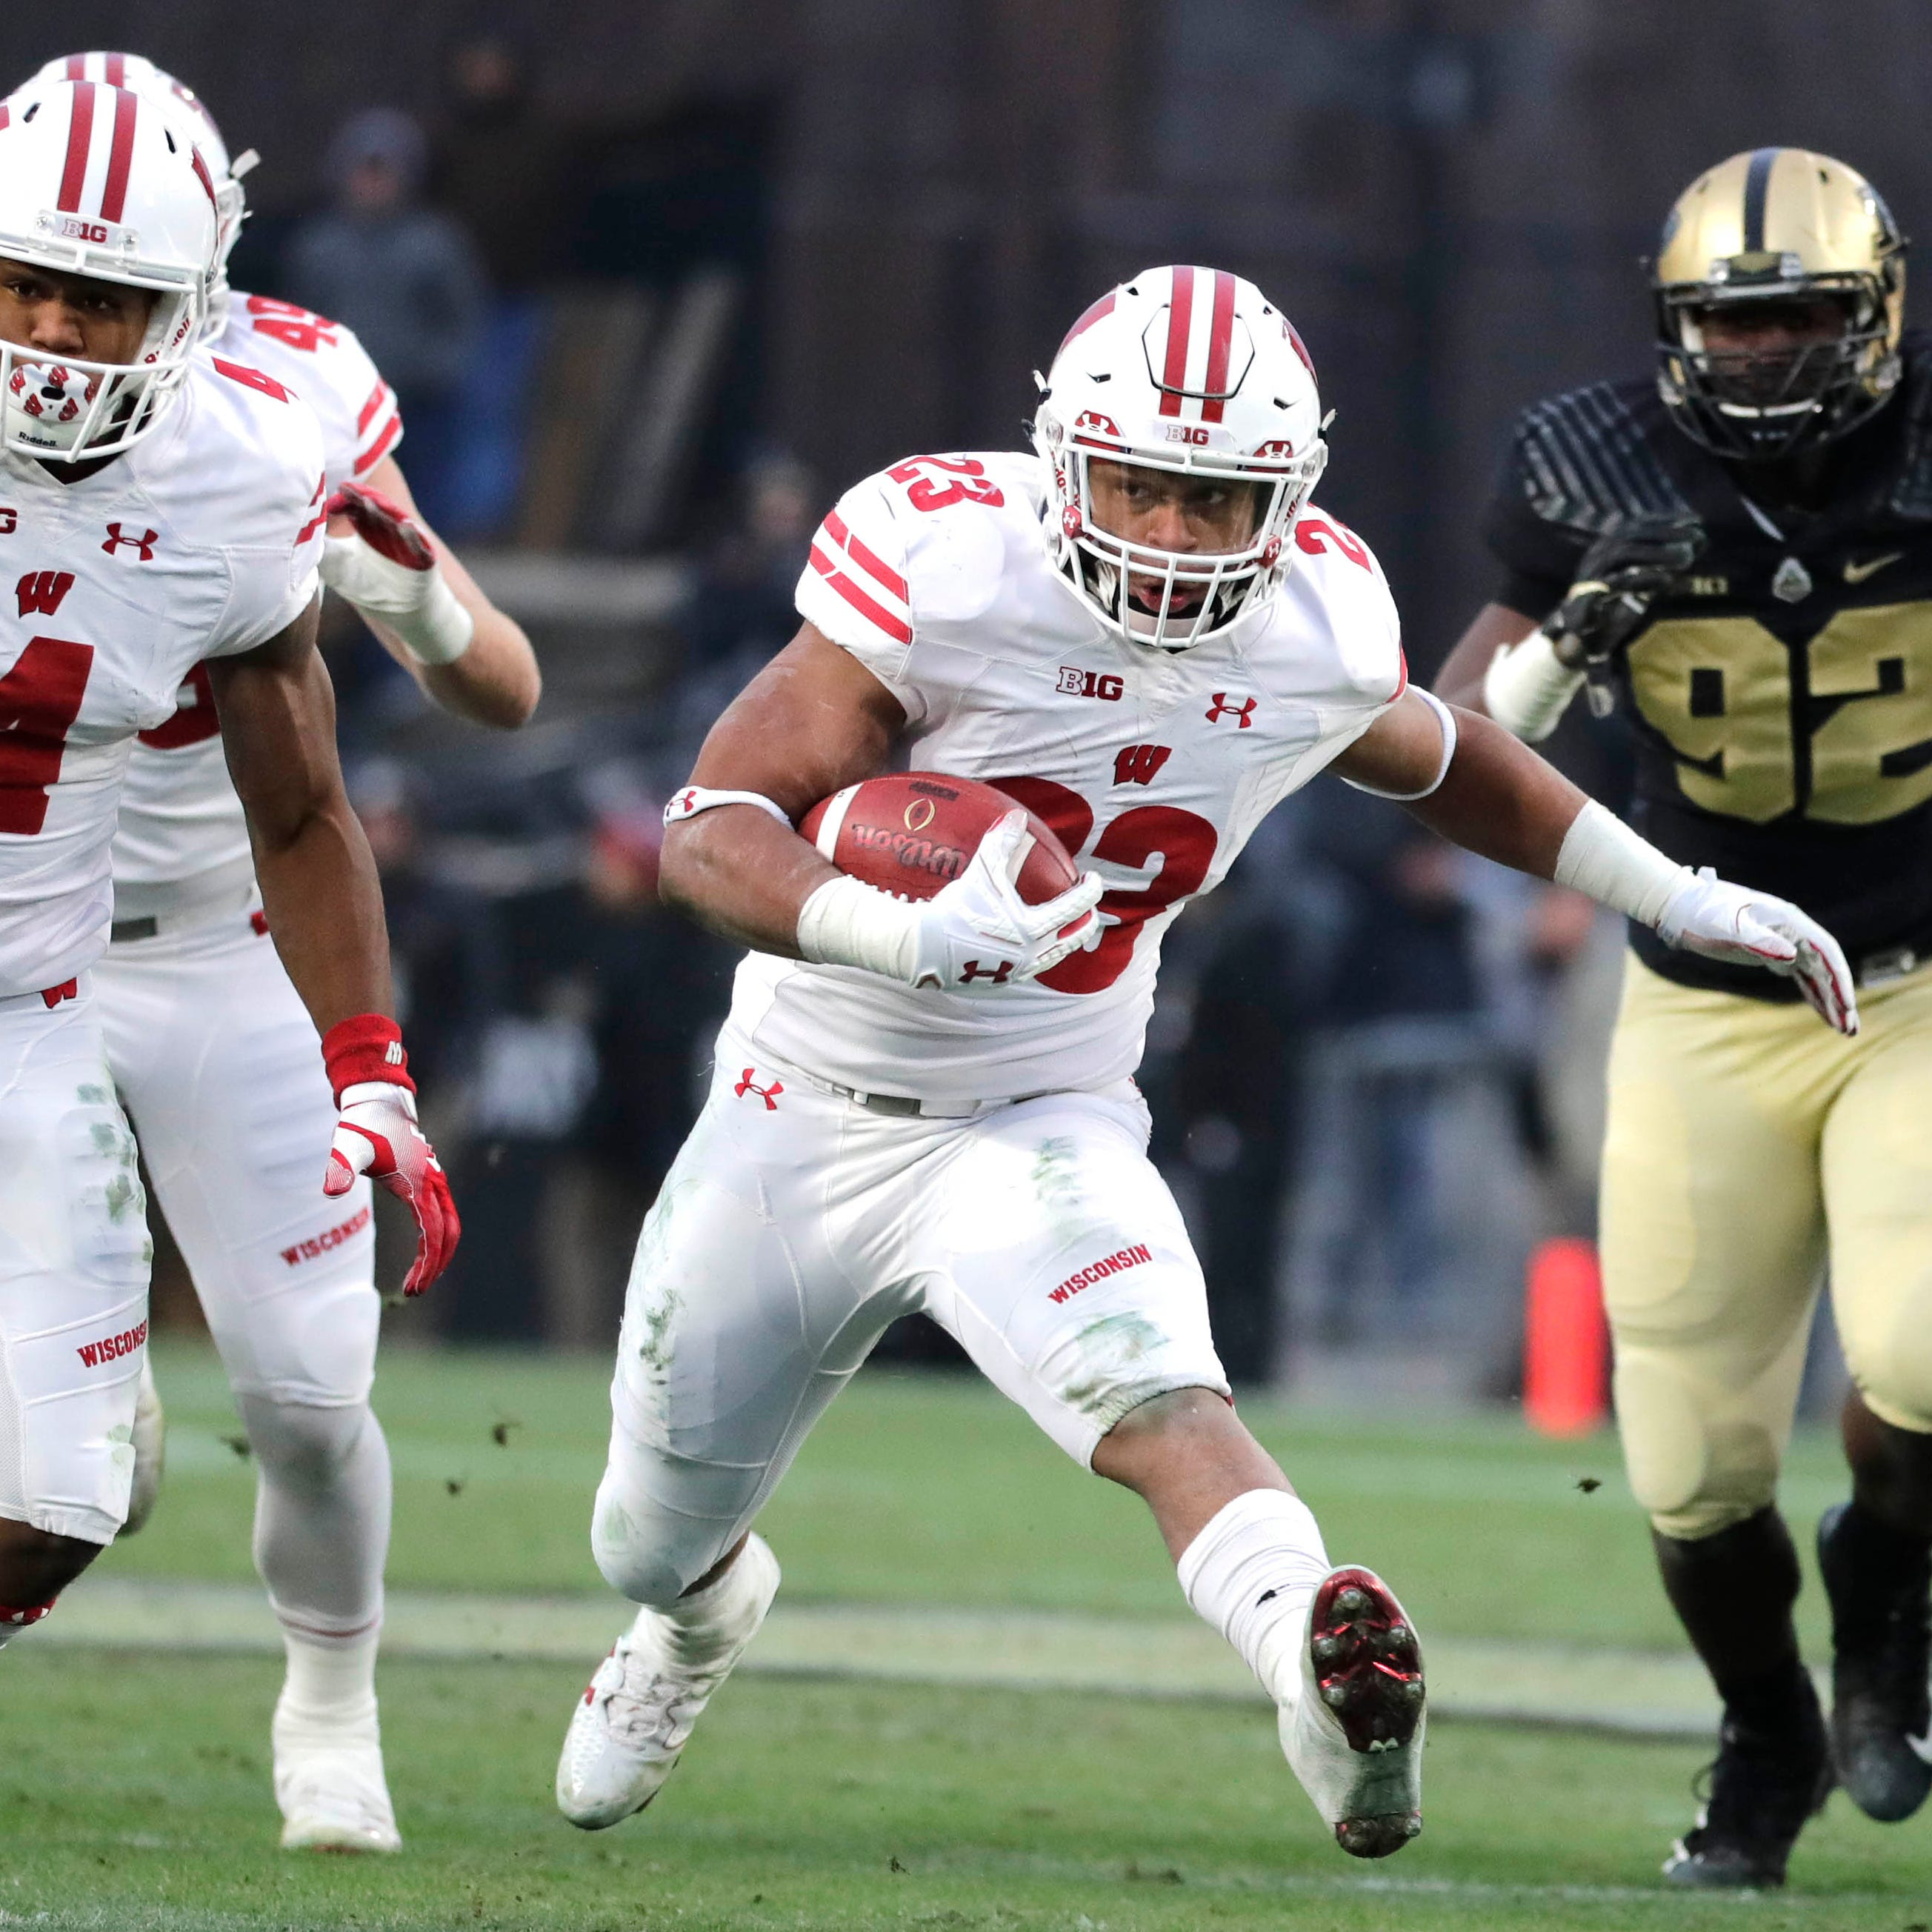 UW 47, Purdue 44 (3 OT): Jonathan Taylor lifts UW in extra session